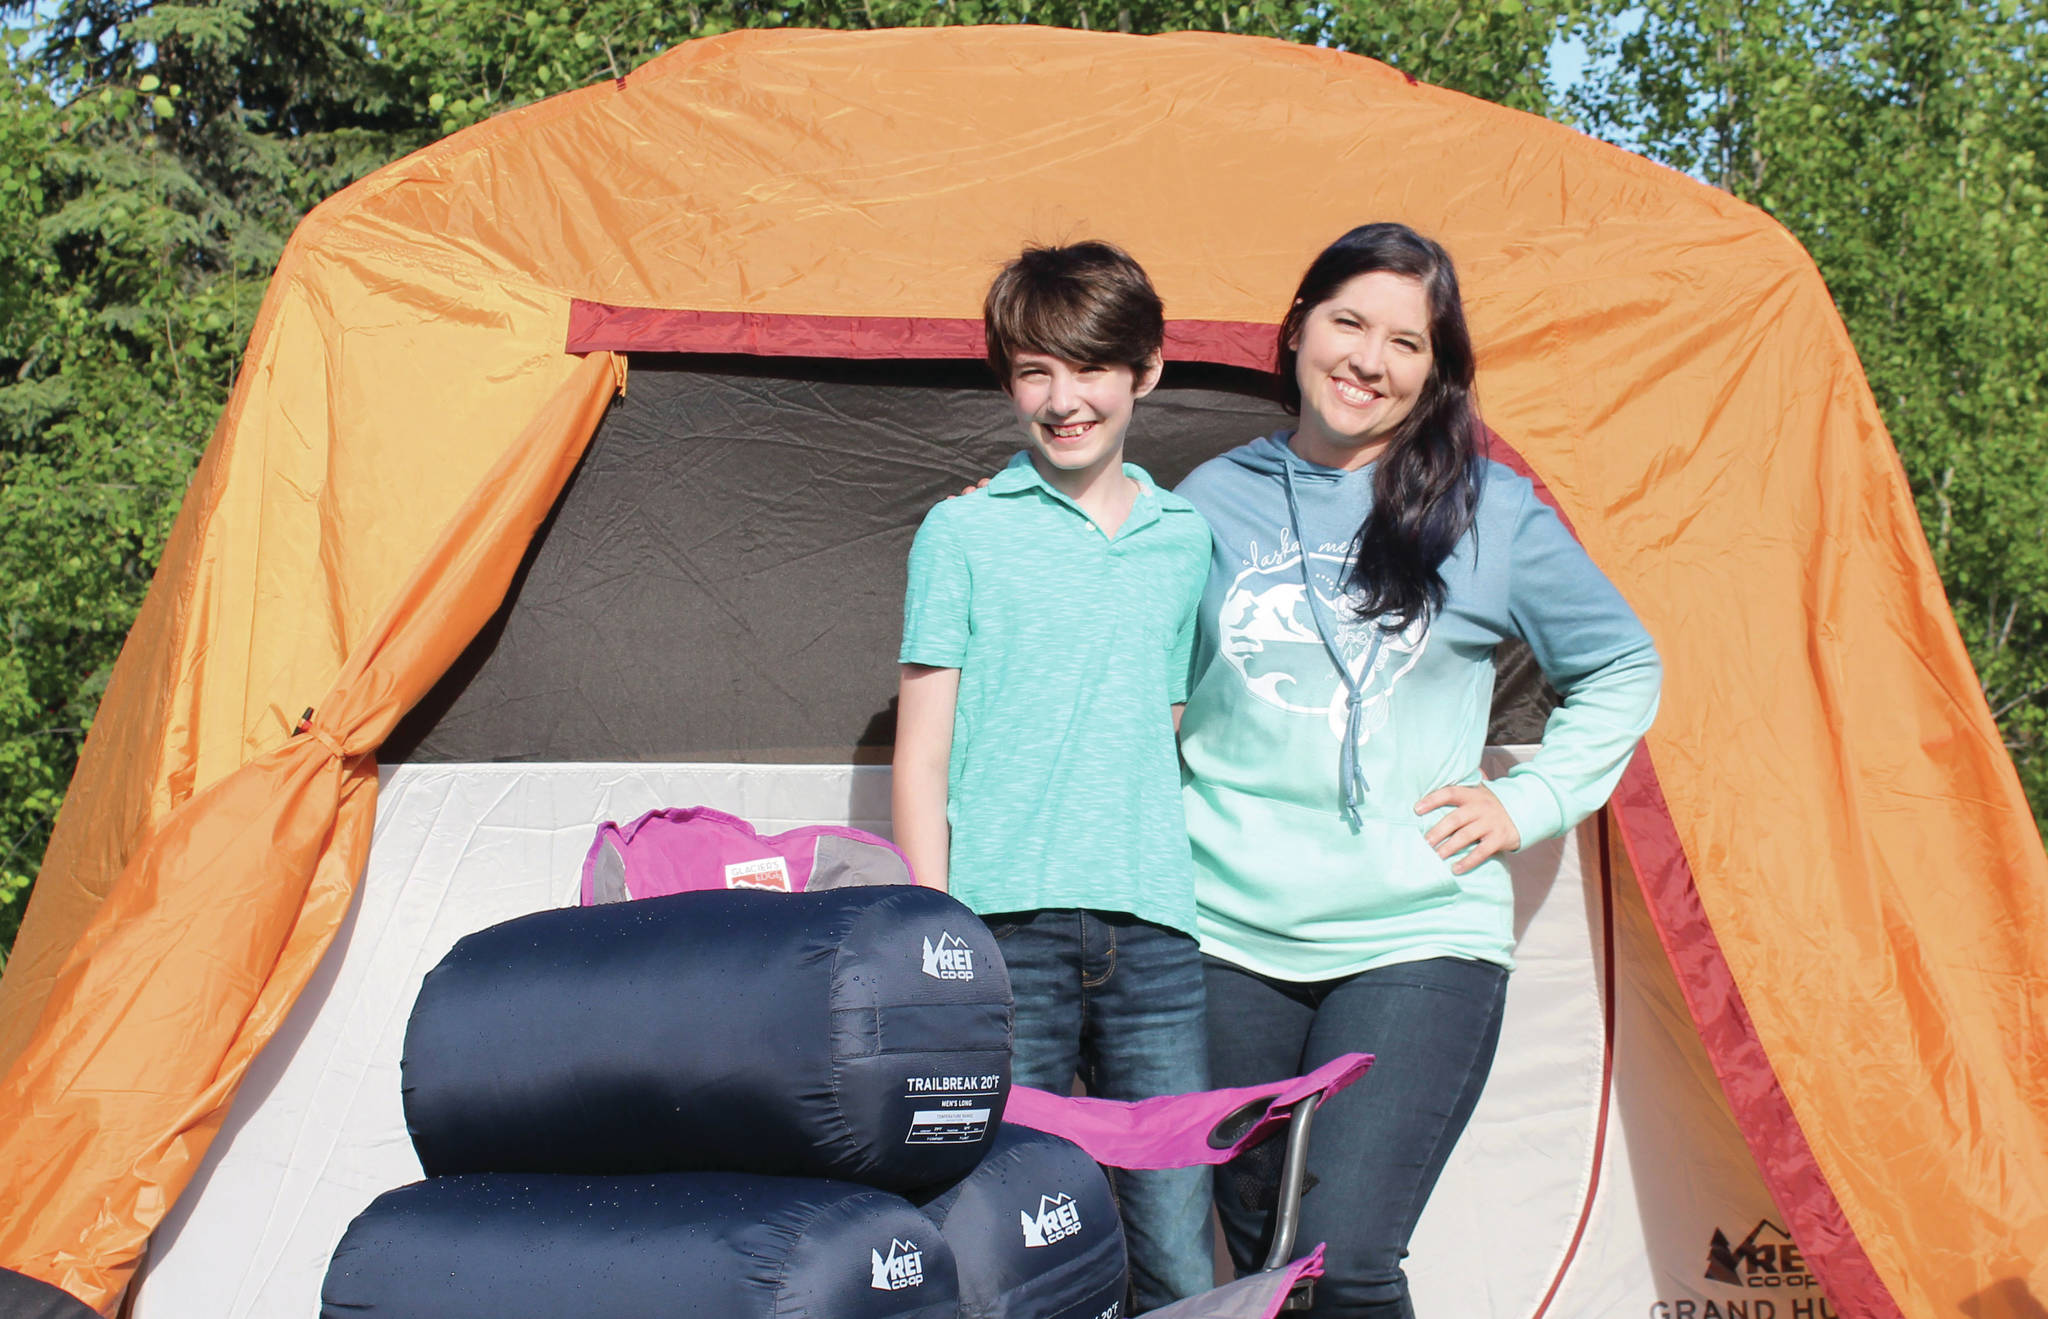 Ashlyn O'Hara / Peninsula Clarion  Koebryn and Summer Lazenby stand in front of camping gear Tuesday at Summer's house near Soldotna.